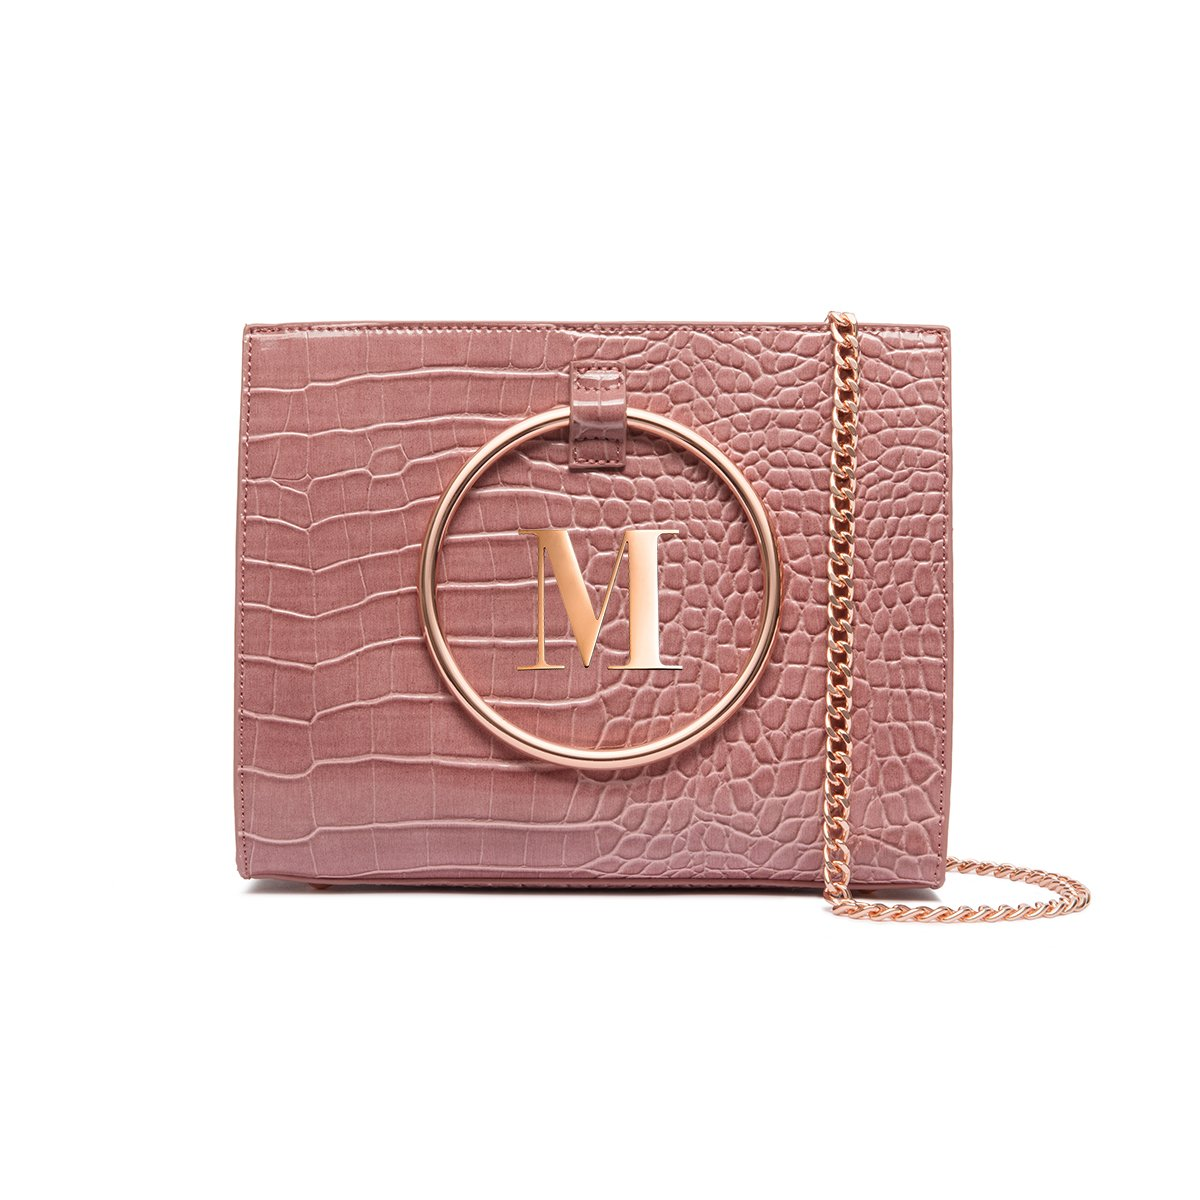 Moda Top Handle Bag (Dusky Mauve/Rose Gold)